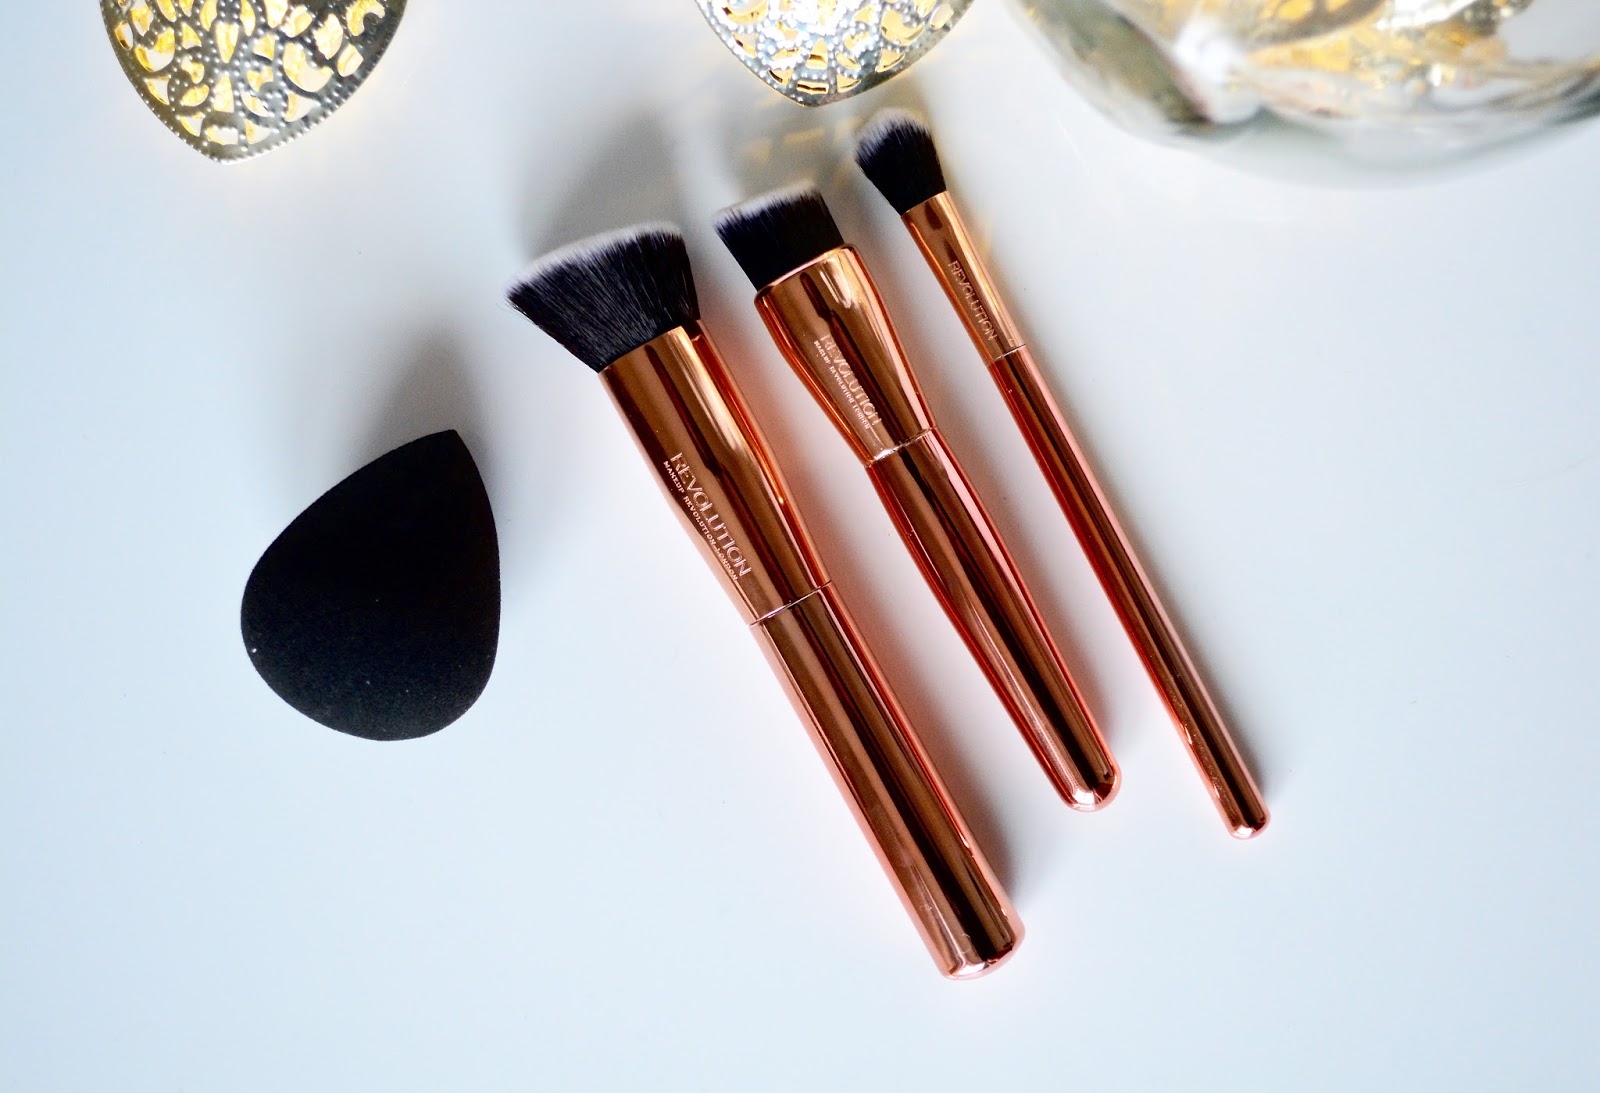 Blend, Contour, Makeup Brushes, Makeup Revolution, Makeup Revolution Makeup Brushes, Sculpt, Ultra Sculpt & Blend Collection,